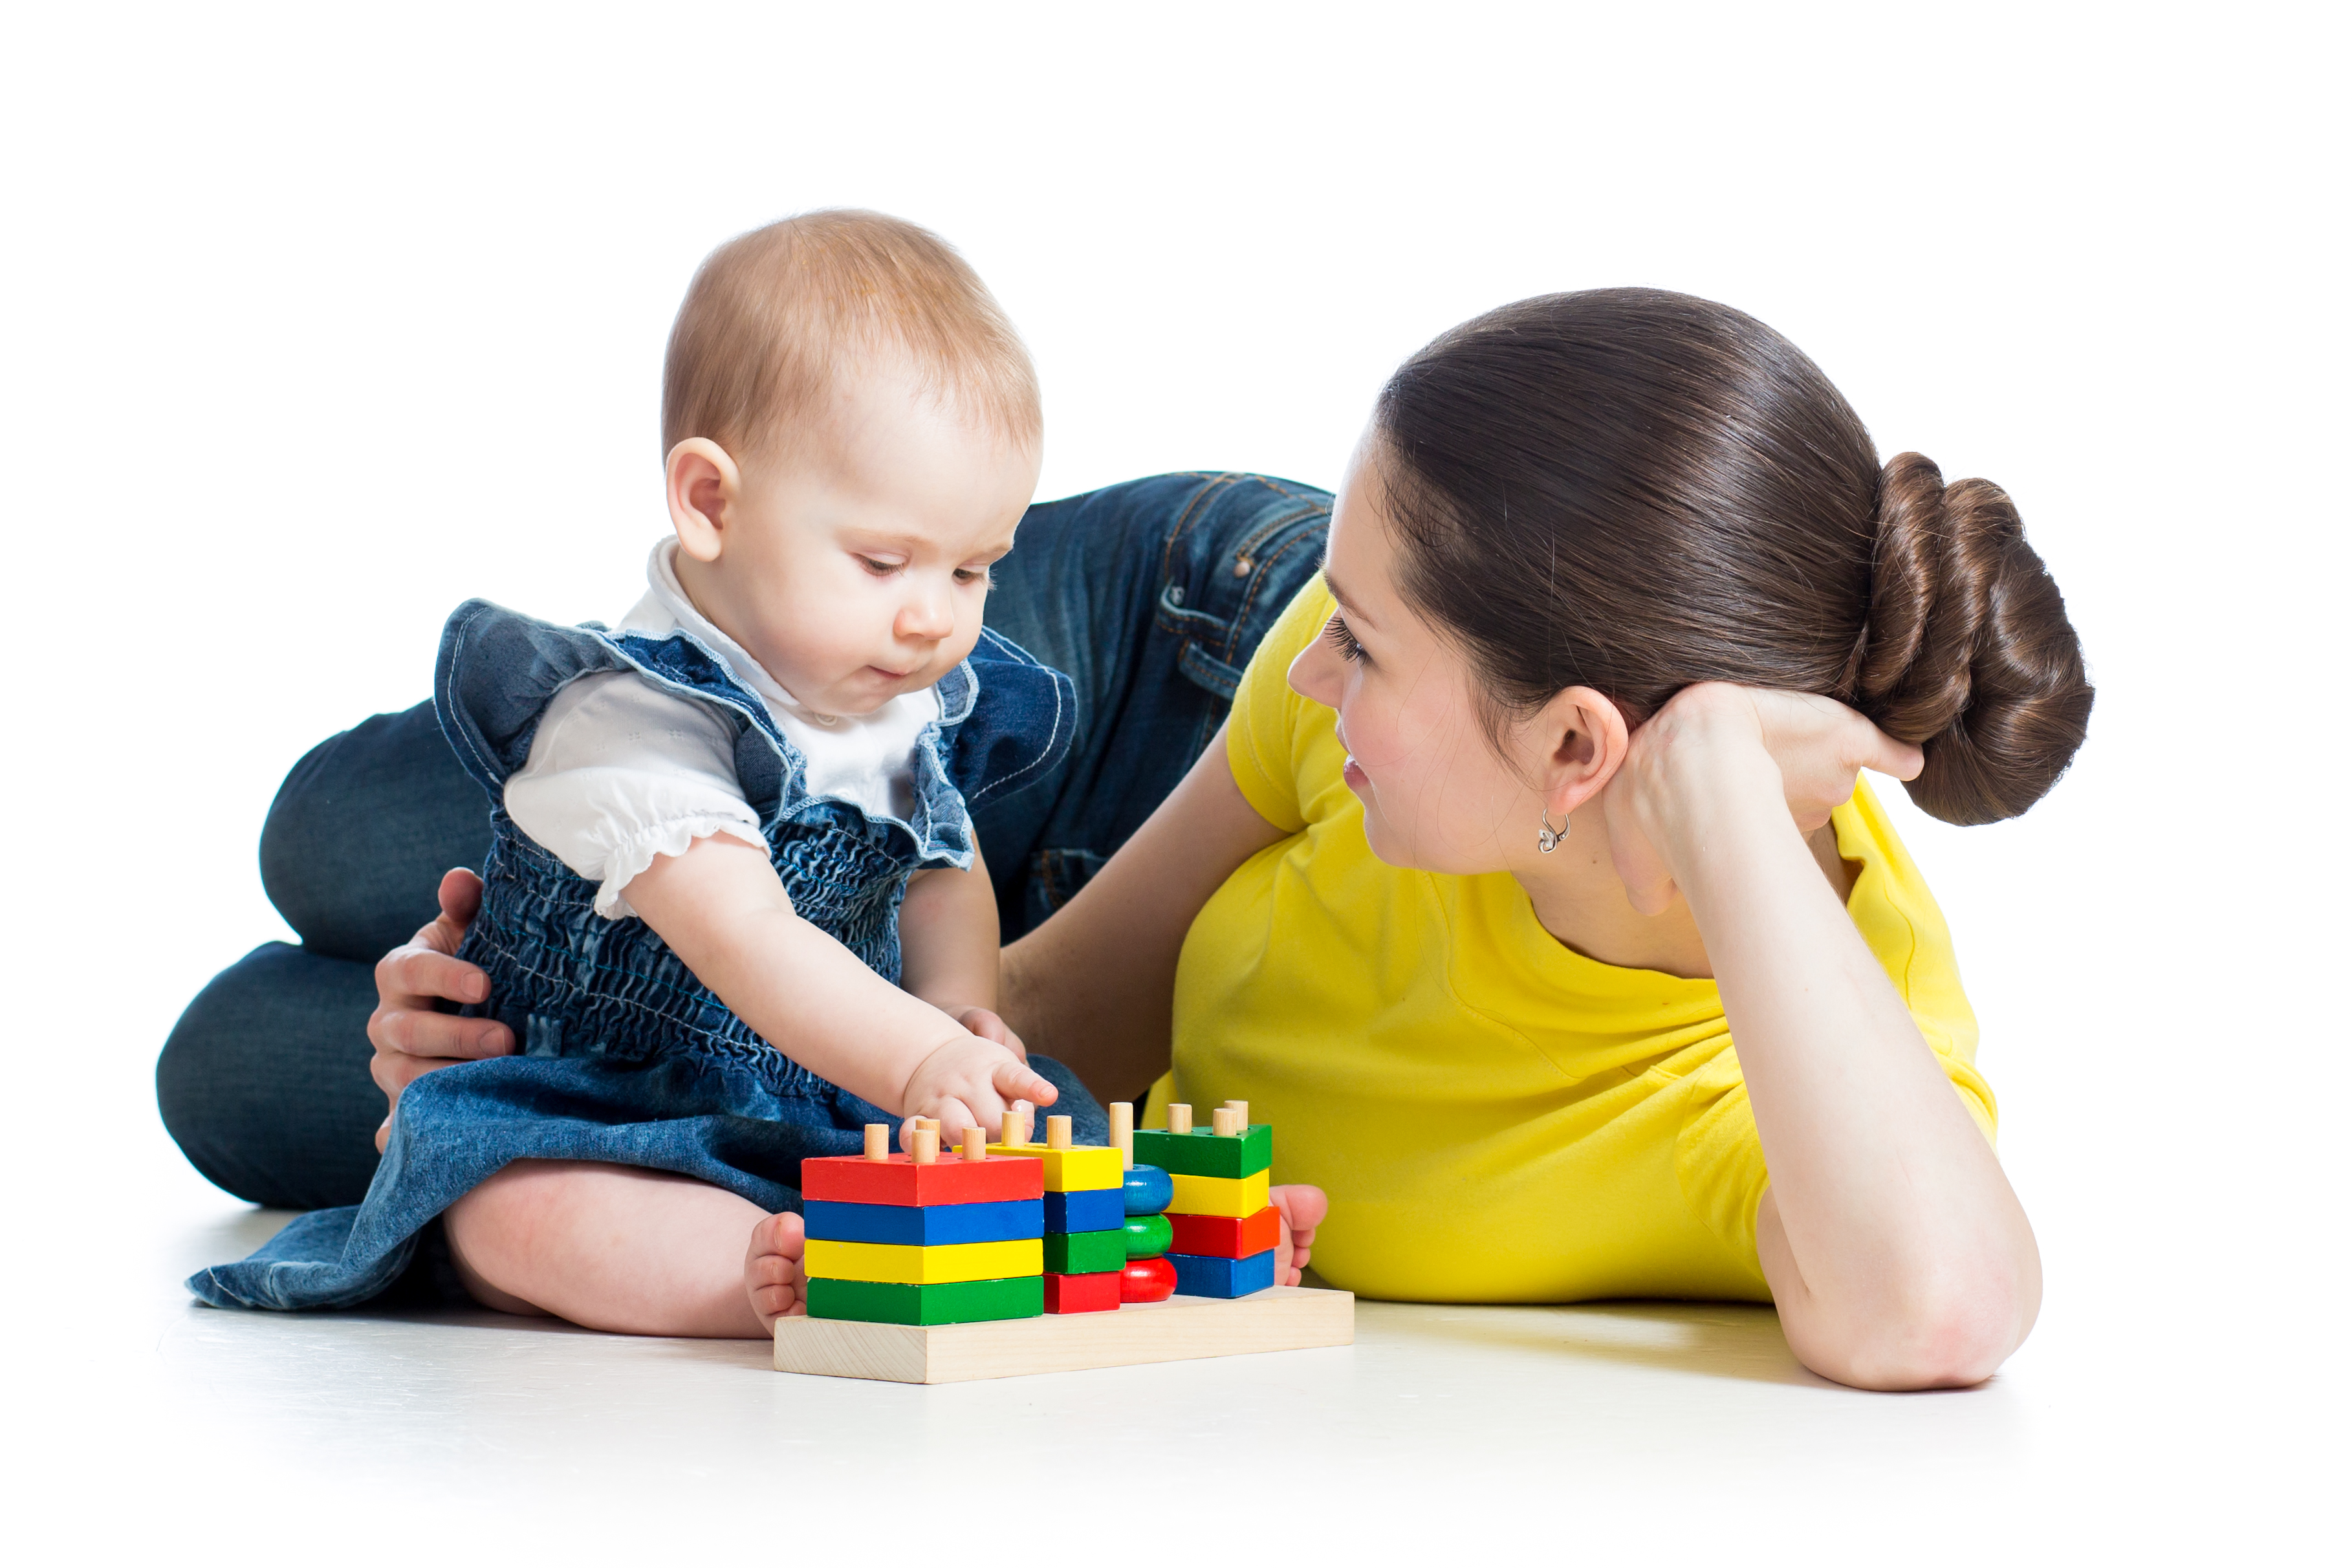 Mother propped up on elbow beside baby daughter who is playing with blocks